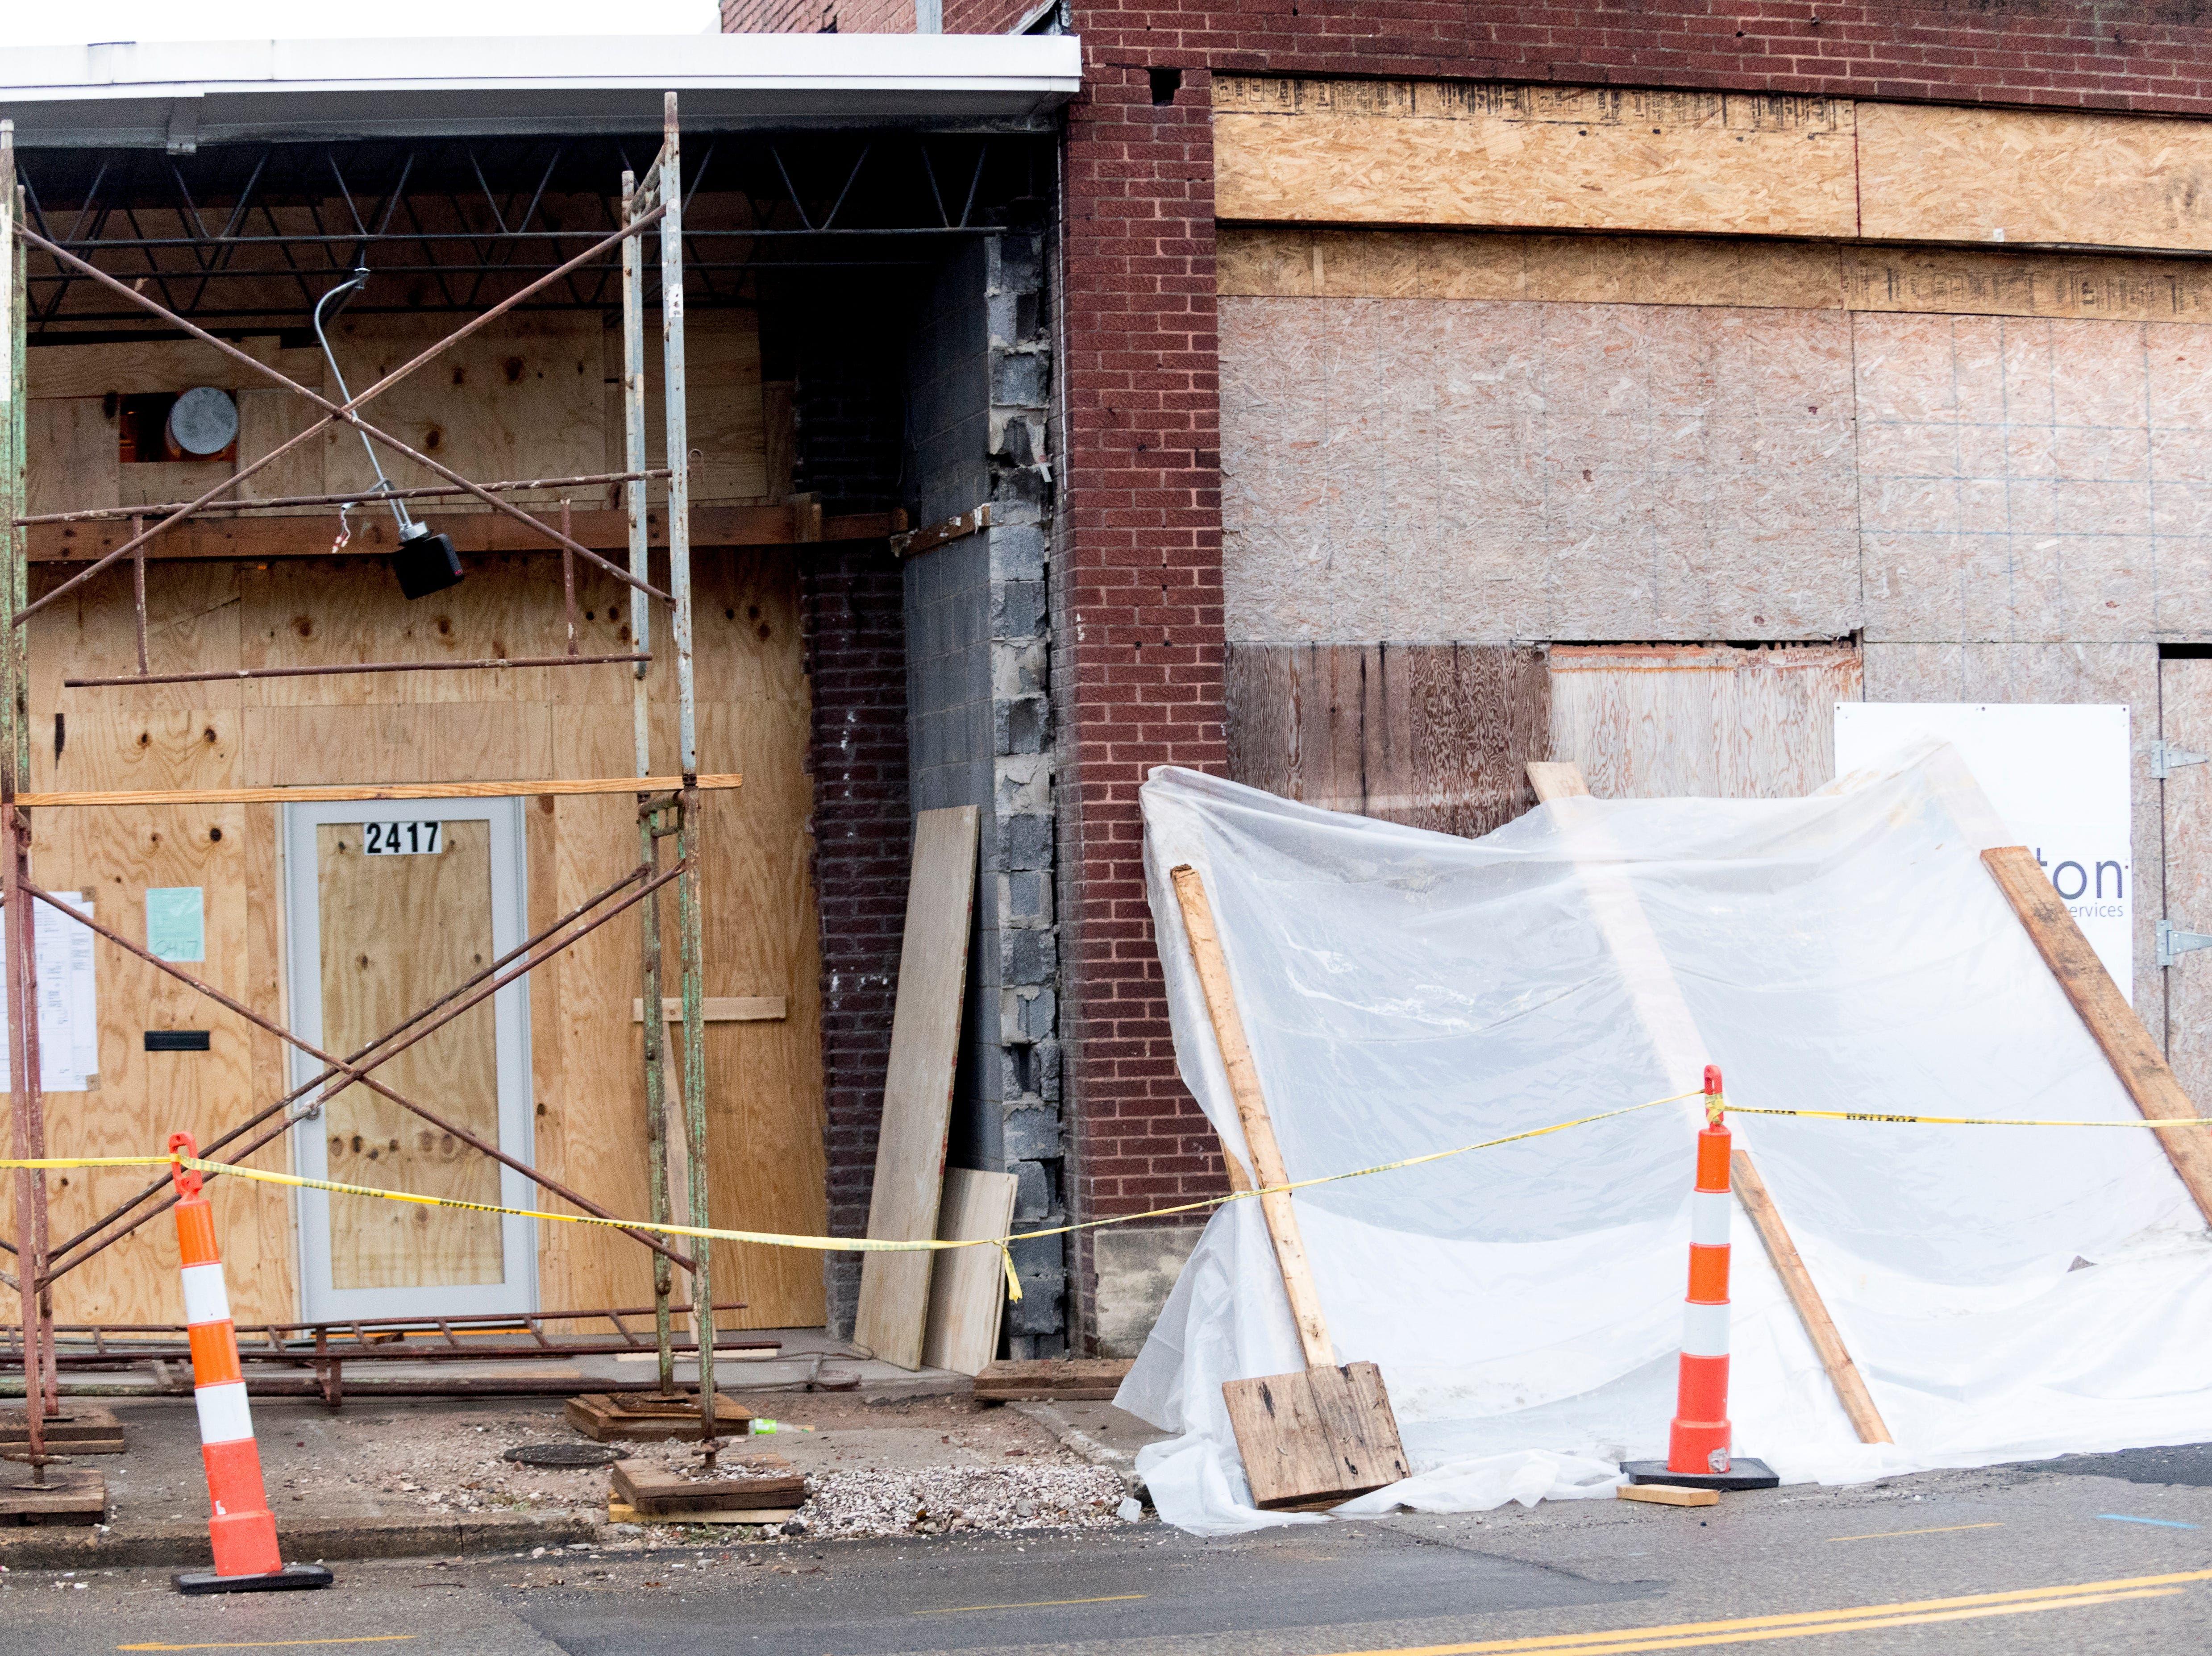 The exterior facade is still under construction at Elst Brewing Company on 2417 N Central St. in Knoxville, Tennessee on Thursday, November 1, 2018. Elst plans to open its door beginning next year.